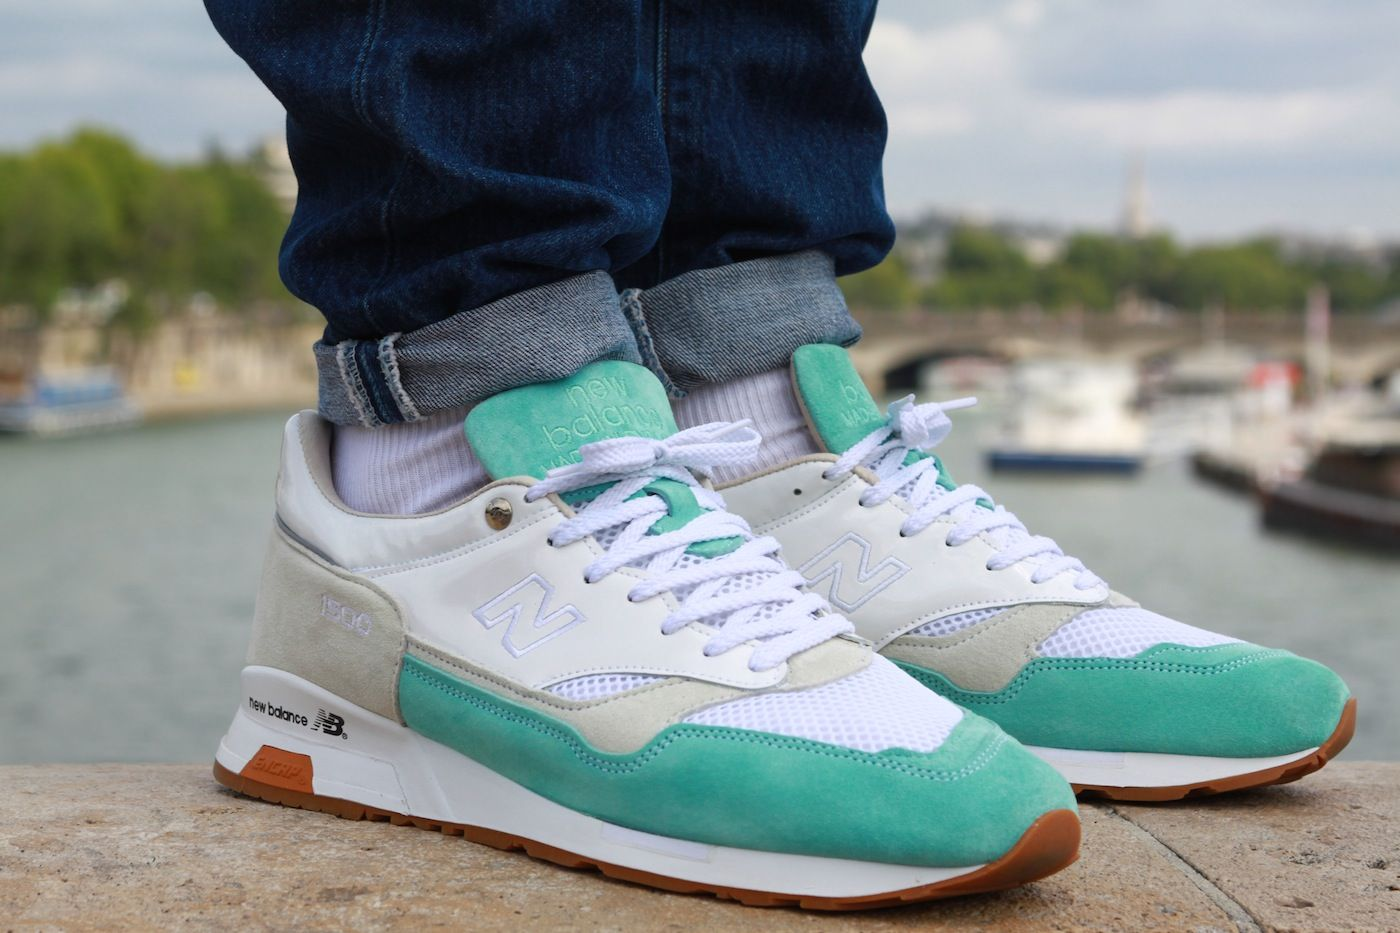 buy popular 65501 dba9d Solebox x New Balance 1500 Toothpaste pack | Kicks ...